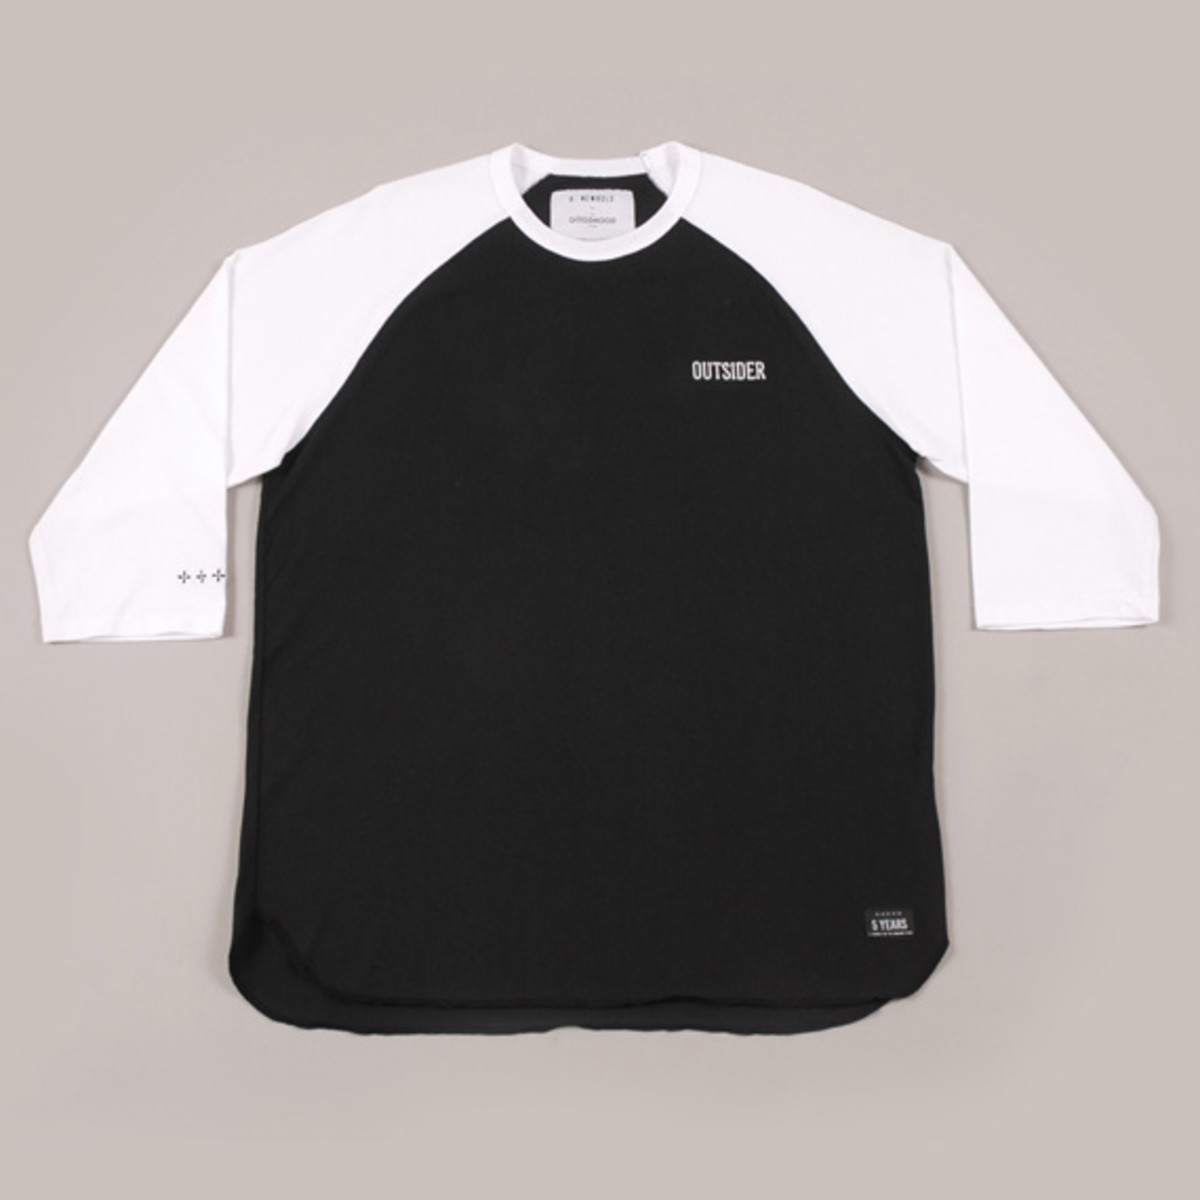 r.newbold-goodhood-5th-anniversary-collection-07